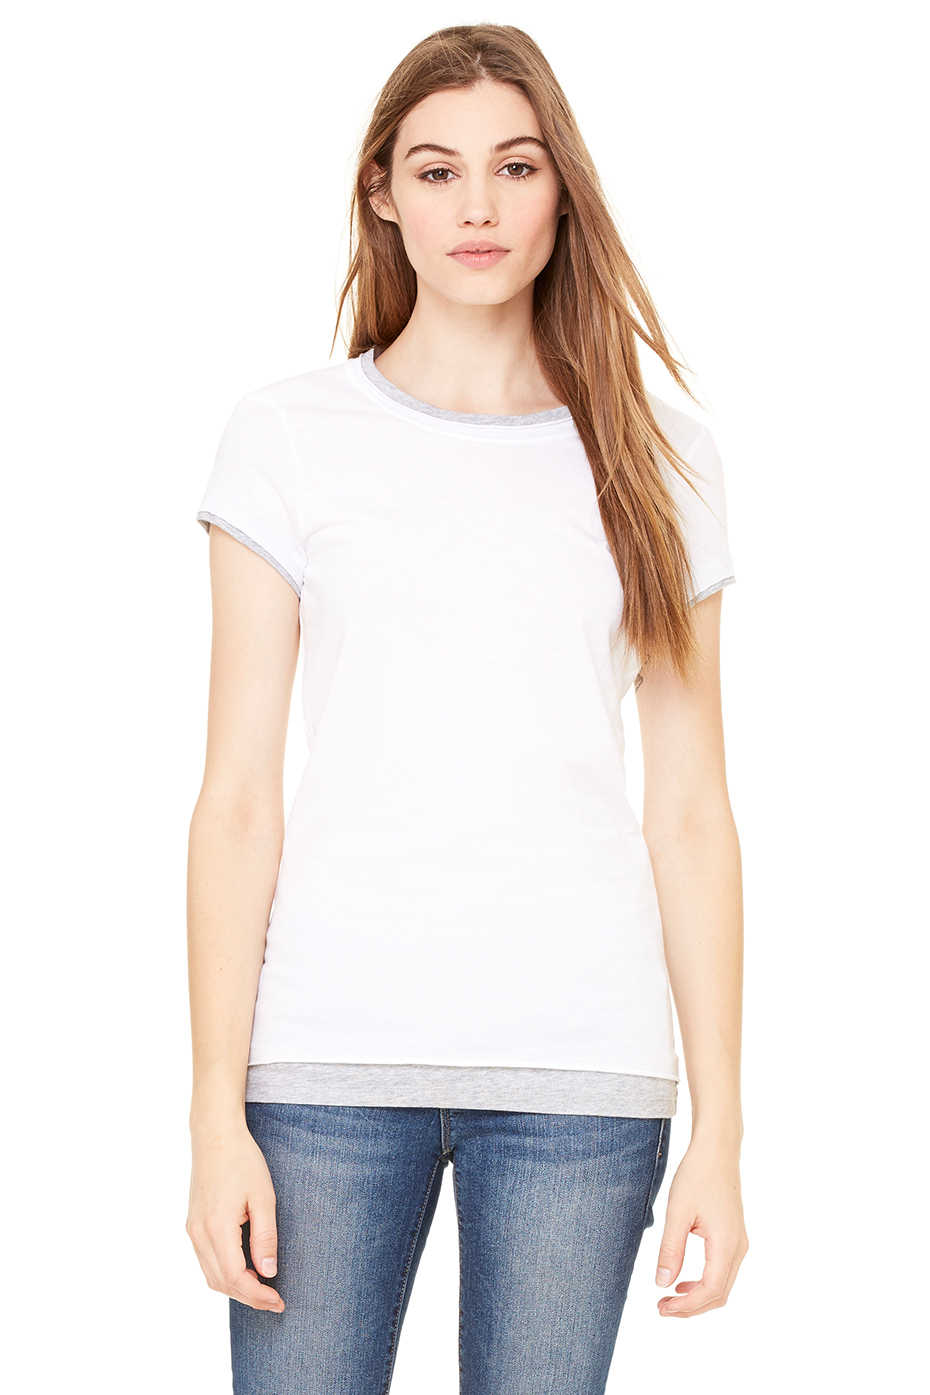 6d624708 Womens Jersey T Shirts | Sheer Tops | Wholesale Womens Clothing ...